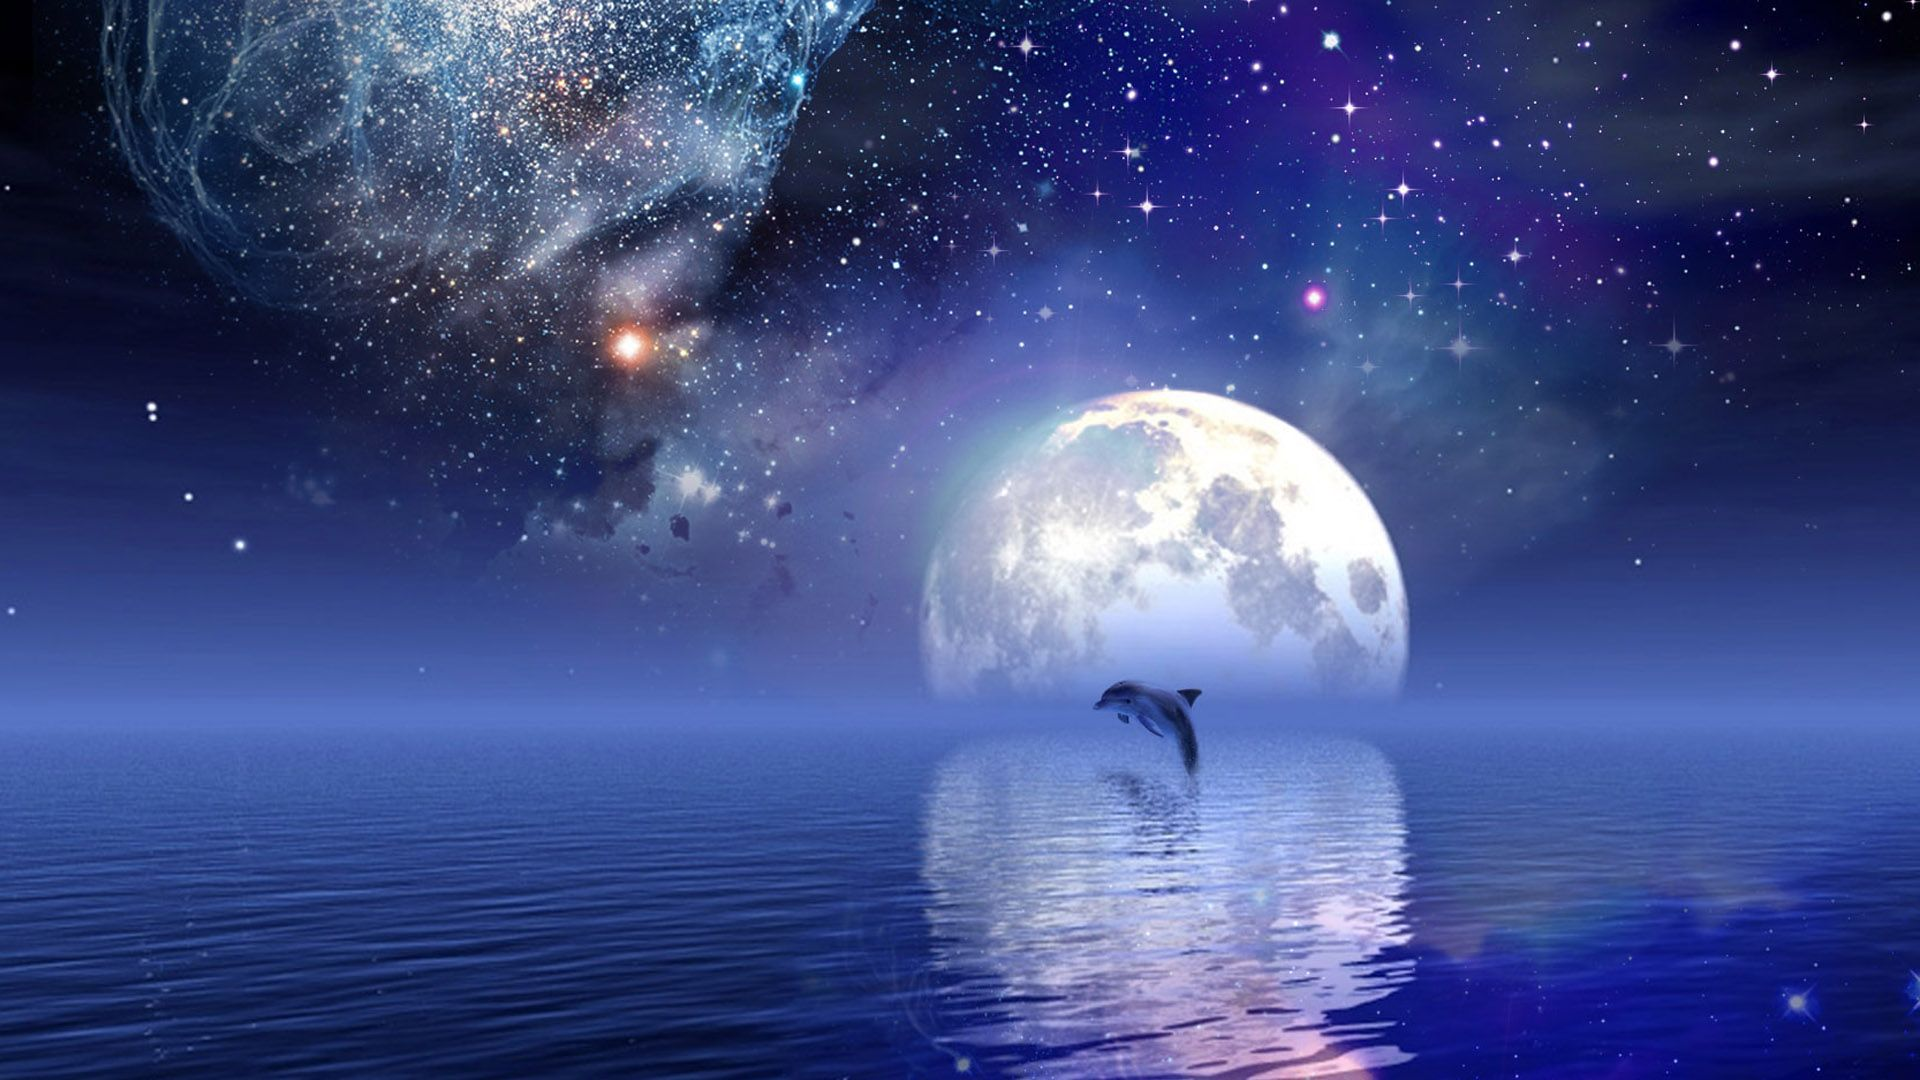 Dolphins wallpapers high definition wallpapers cool nature - Dolphins Making A Heart At Sunset Dolphin Heart Wallpaper Wallpaper Dolphin Water Dolphins Pinterest Wallpaper